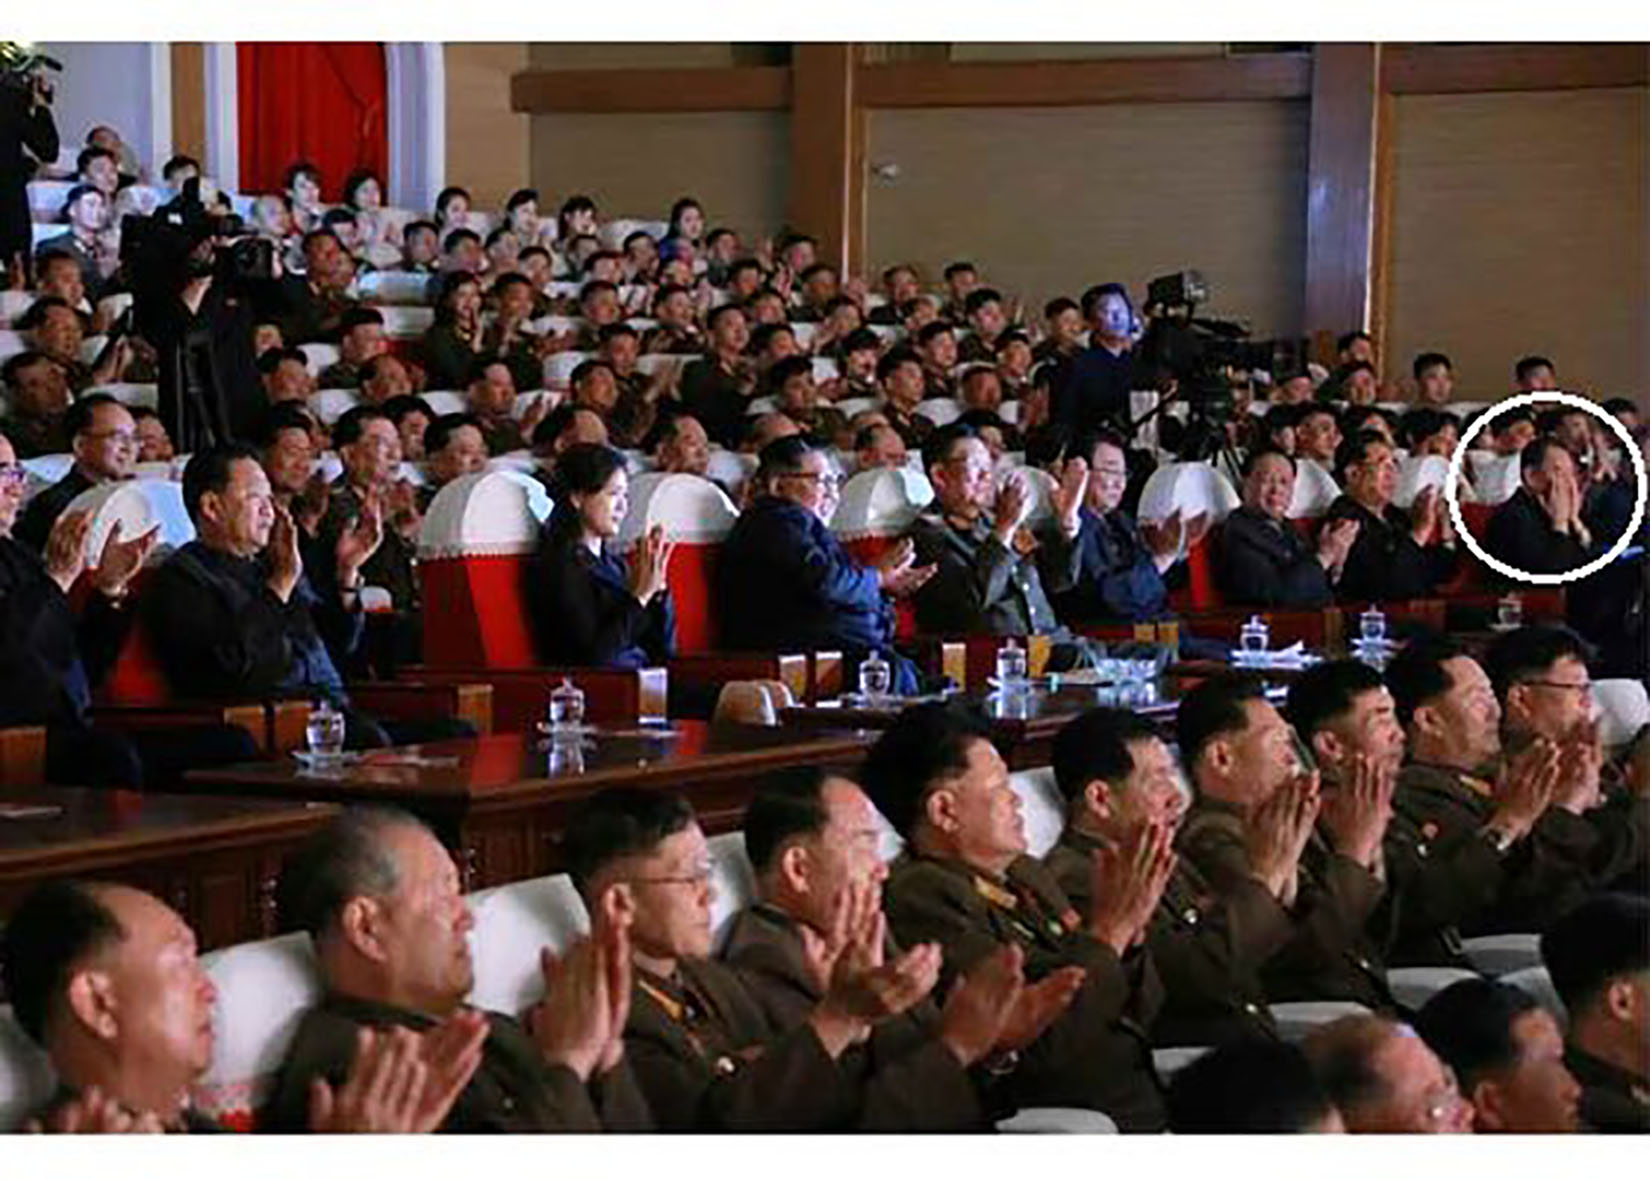 North Korea chief negotiator Kim Yong Chol (circled) appears at an art event, after reports of a purge.